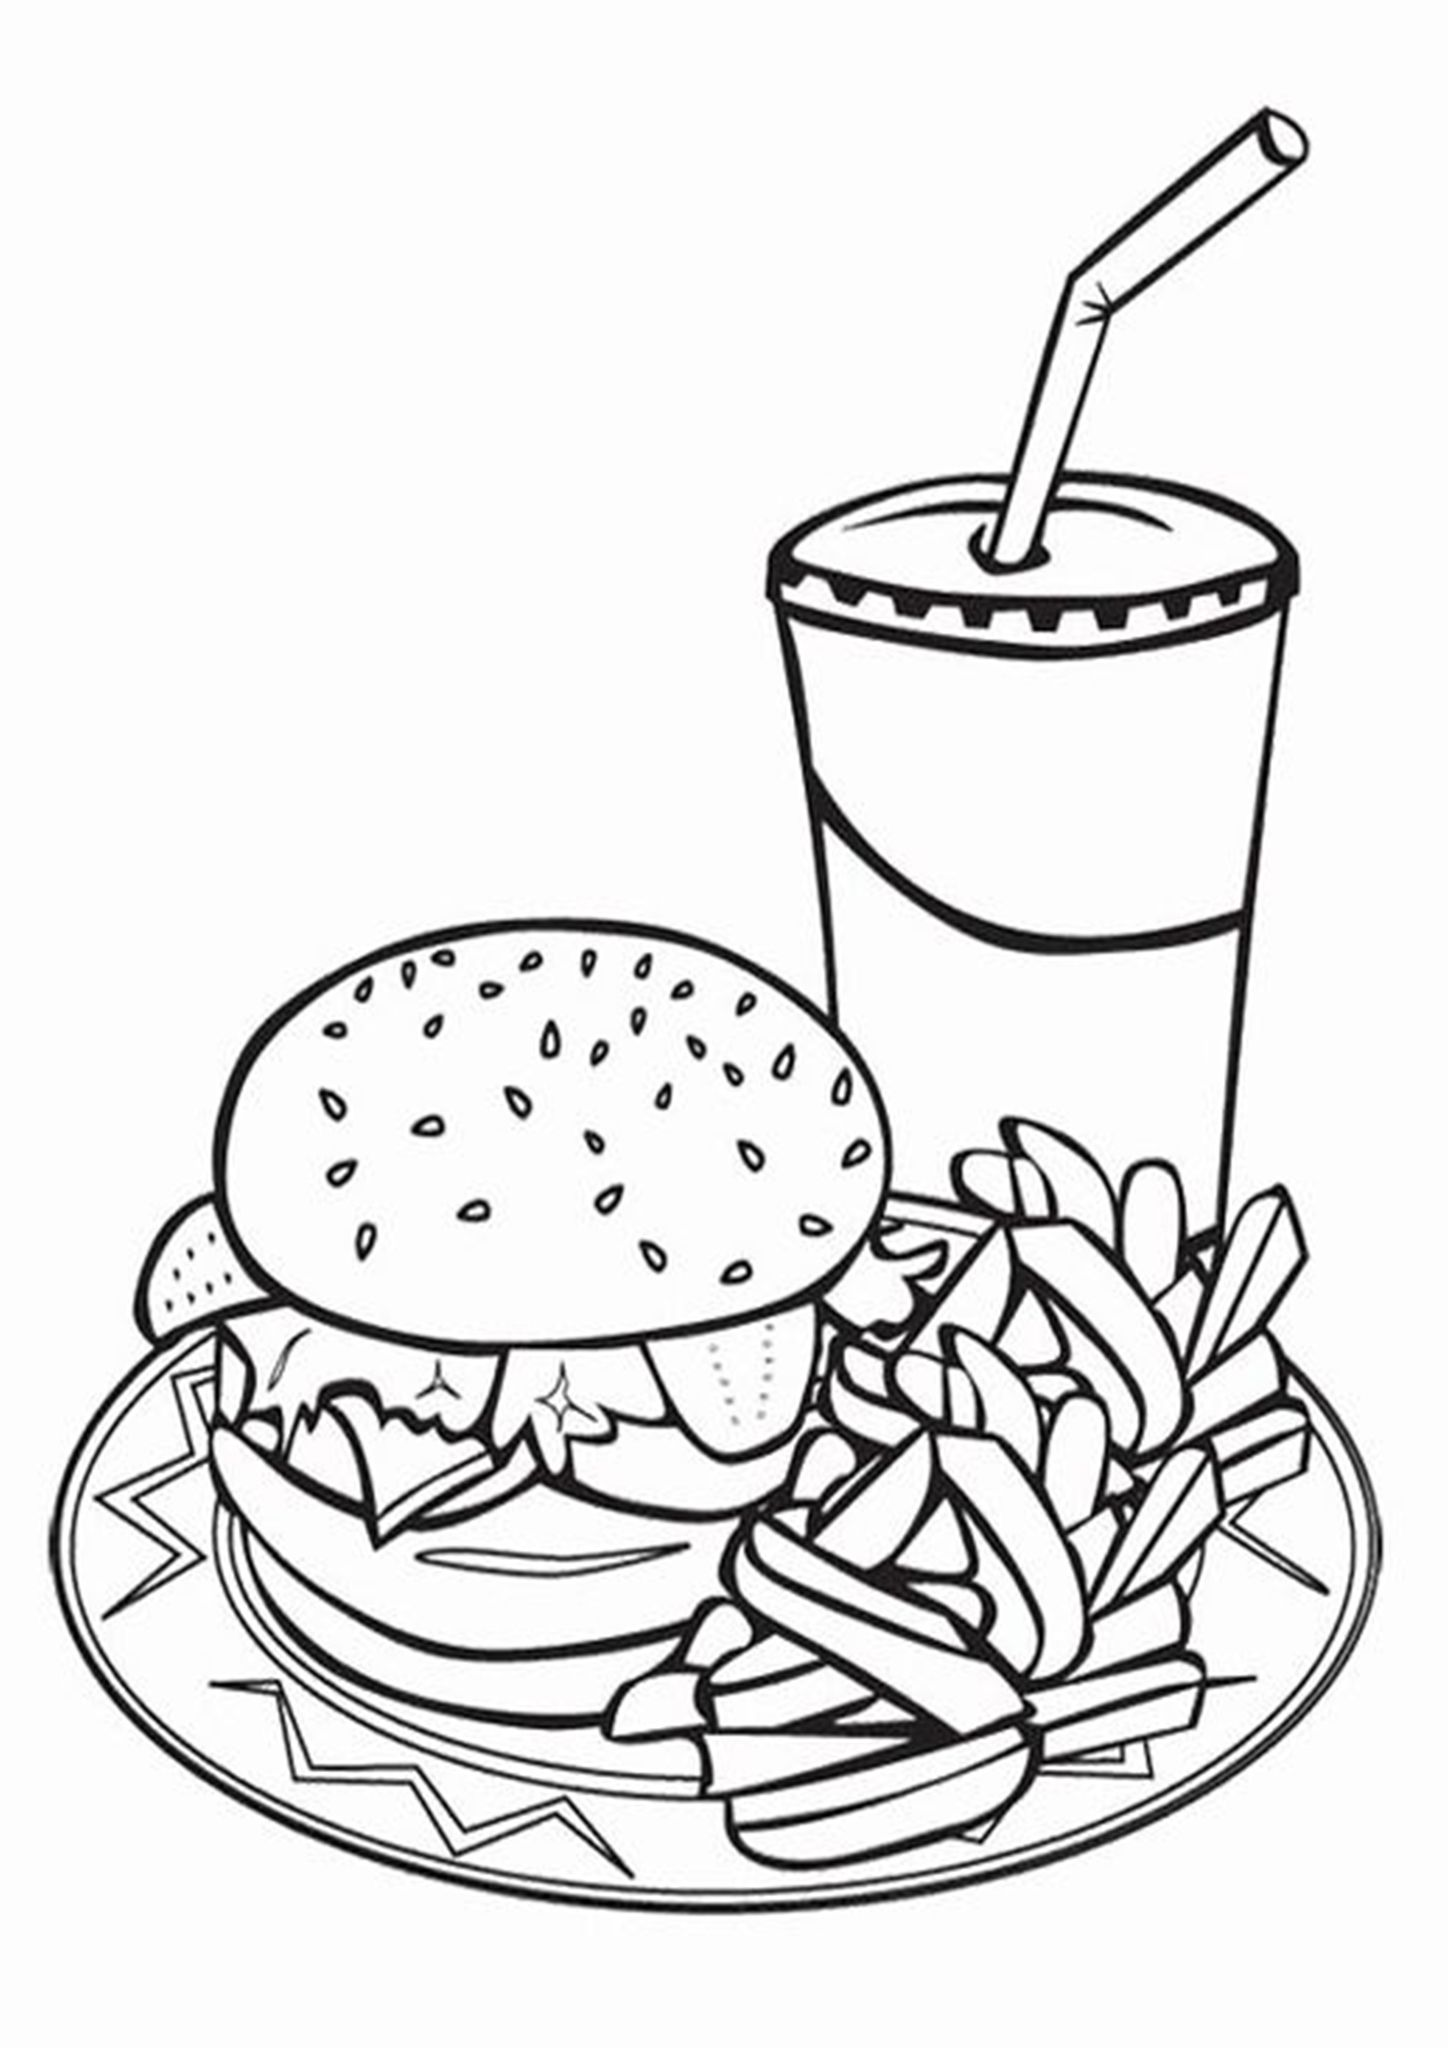 Free Easy To Print Food Coloring Pages Food Coloring Pages Coloring Pages For Kids Coloring Pages